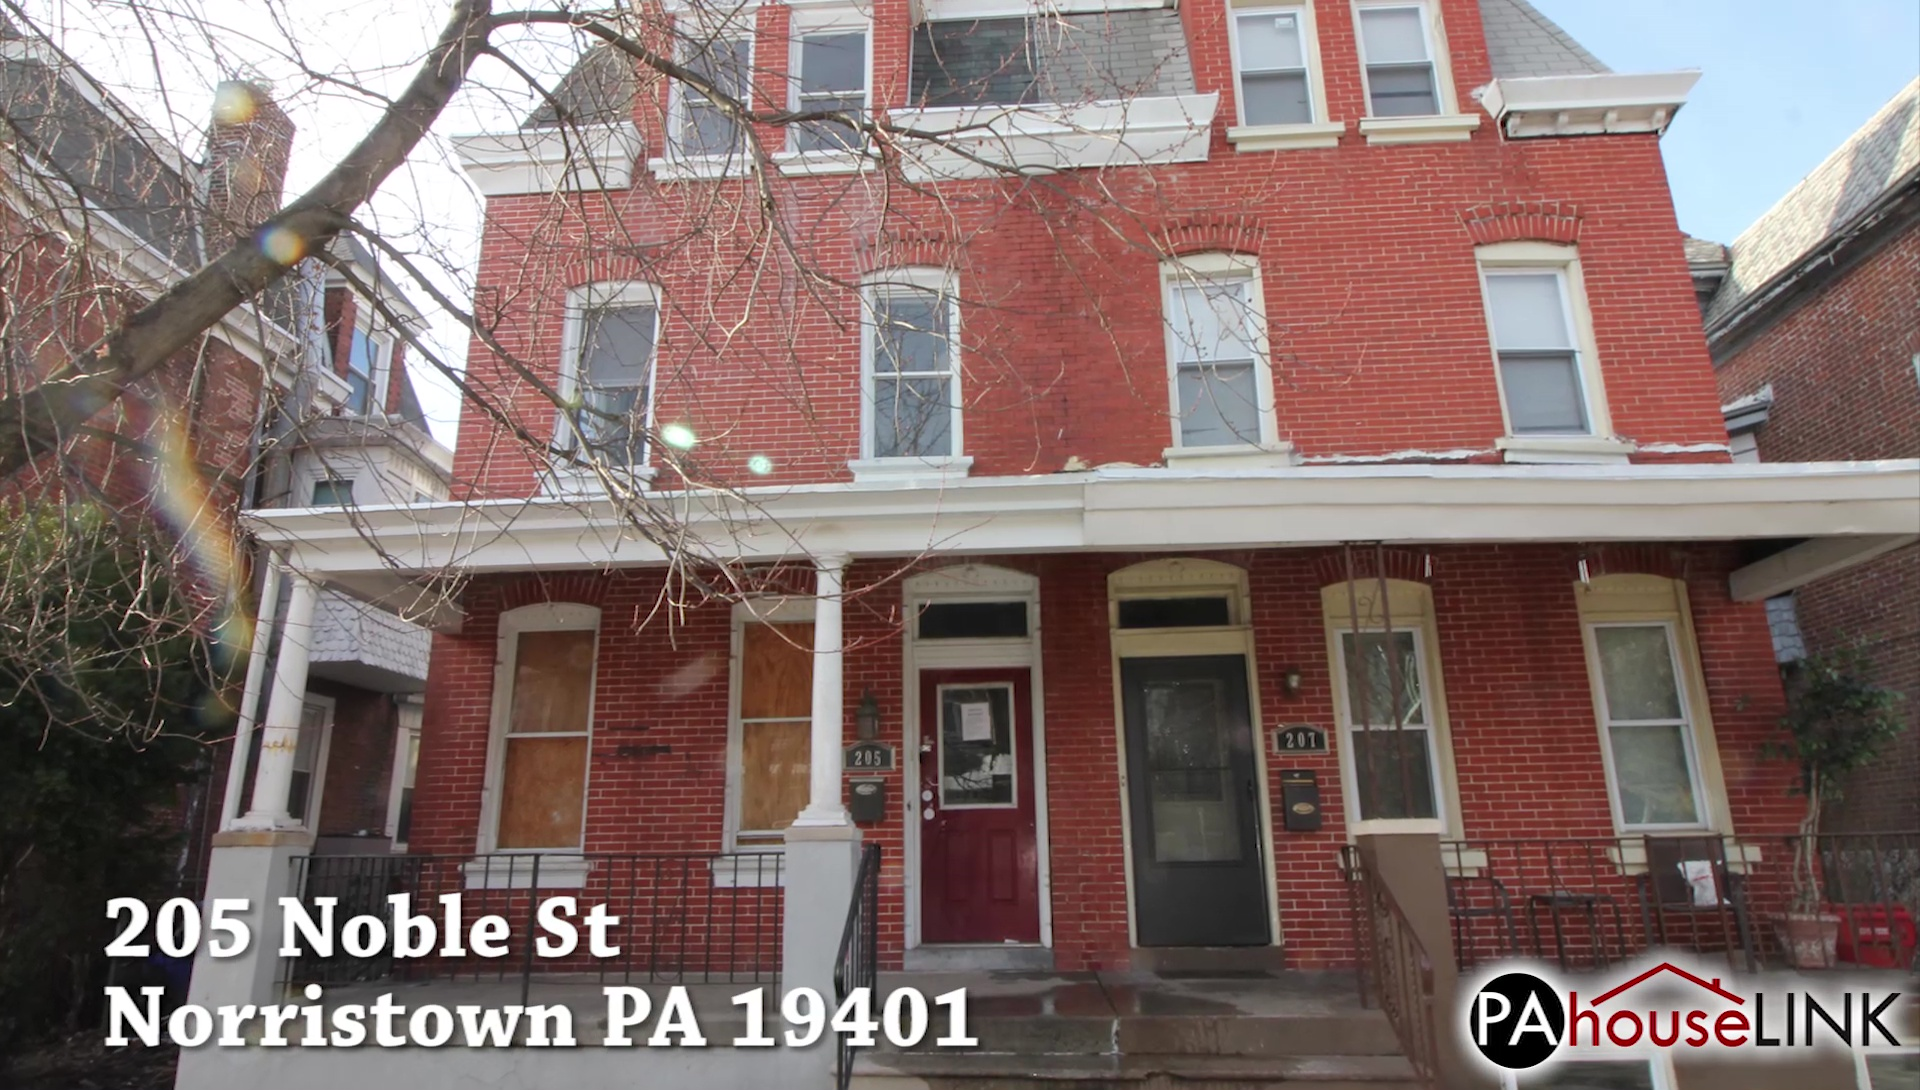 205 Noble St Norristown PA 19401 | Coming Soon Foreclosure Properties Norristown PA 19401